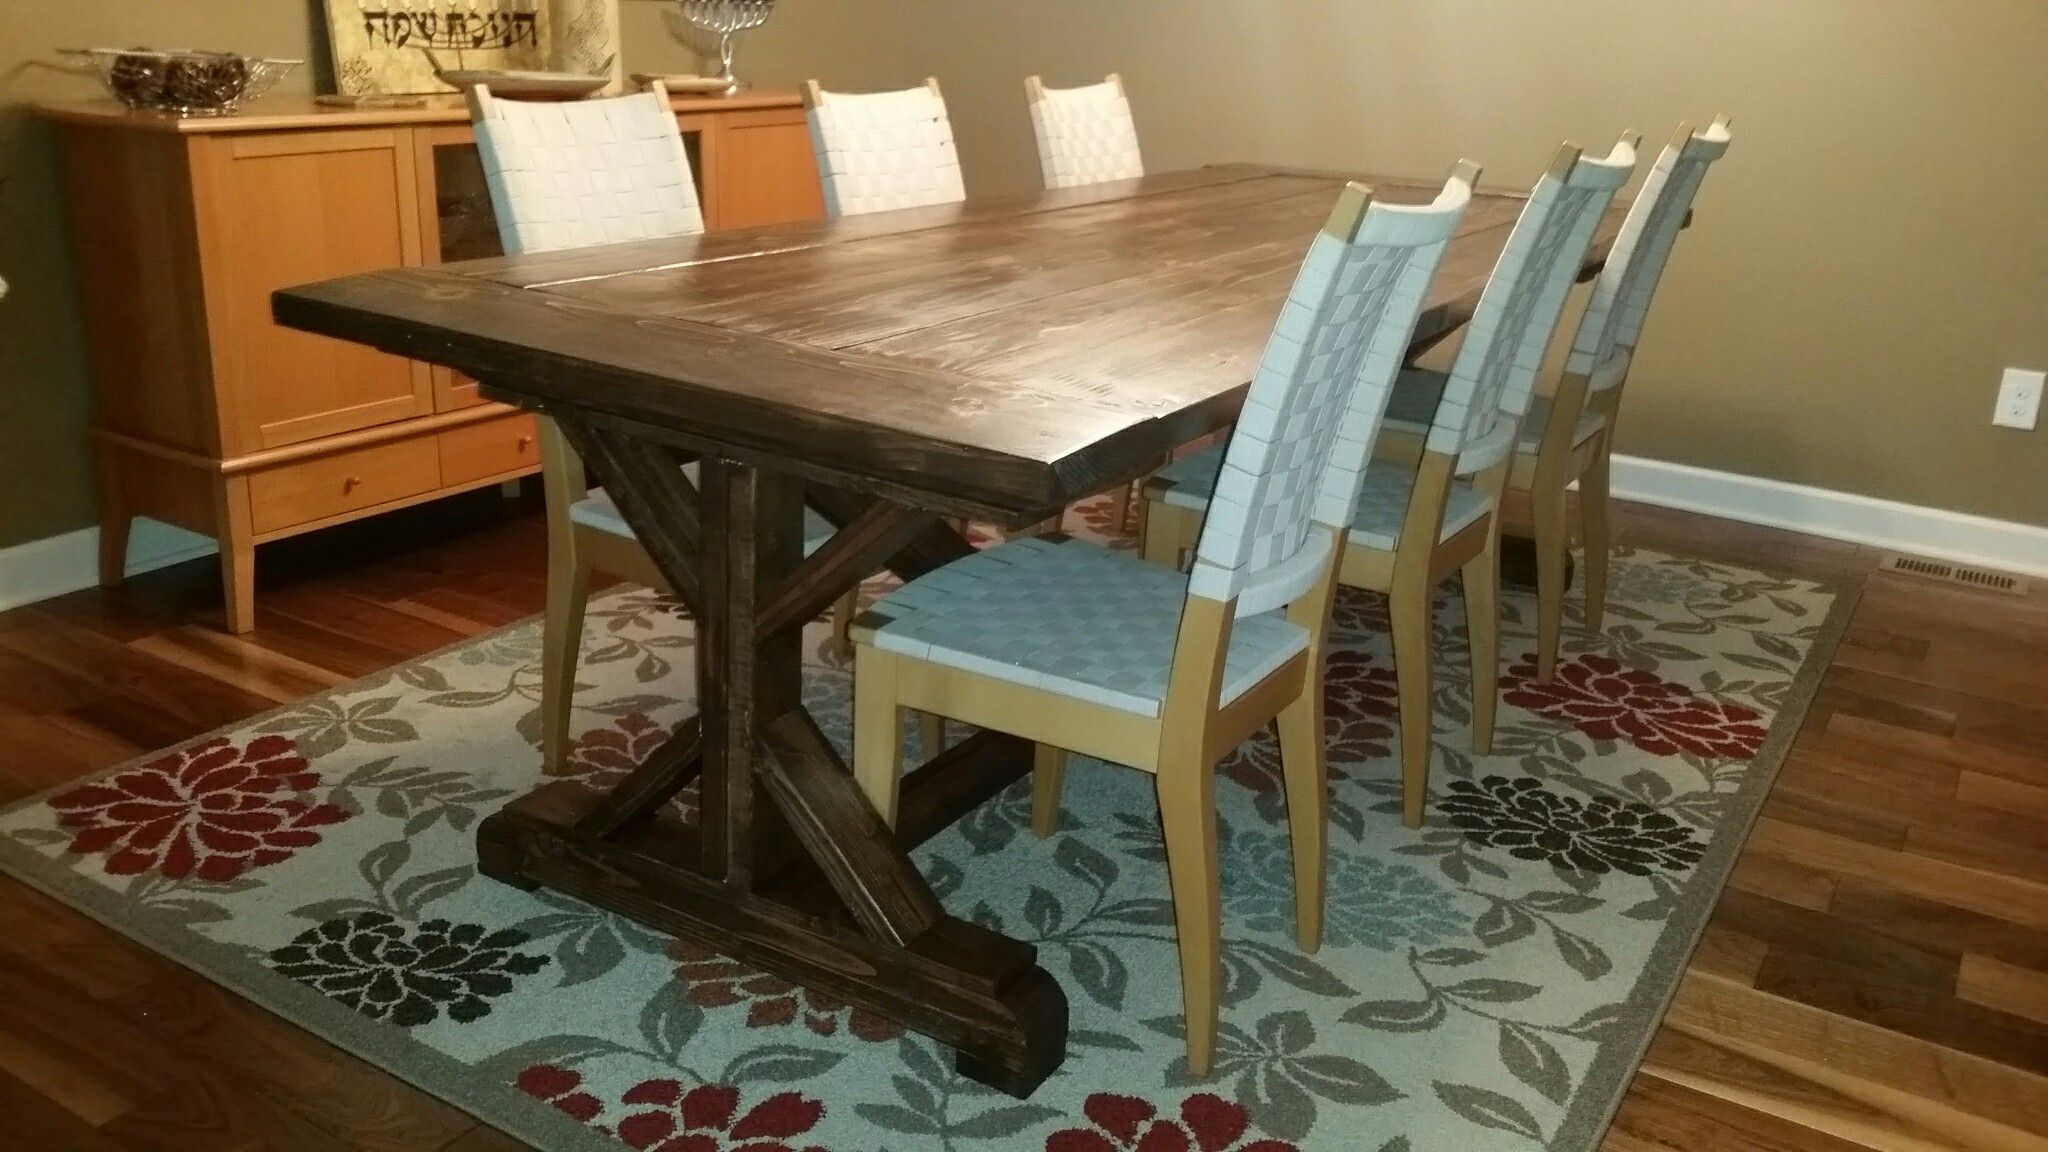 Barnhouse Table Dining Table Rustic Dining Table Rustic Dining